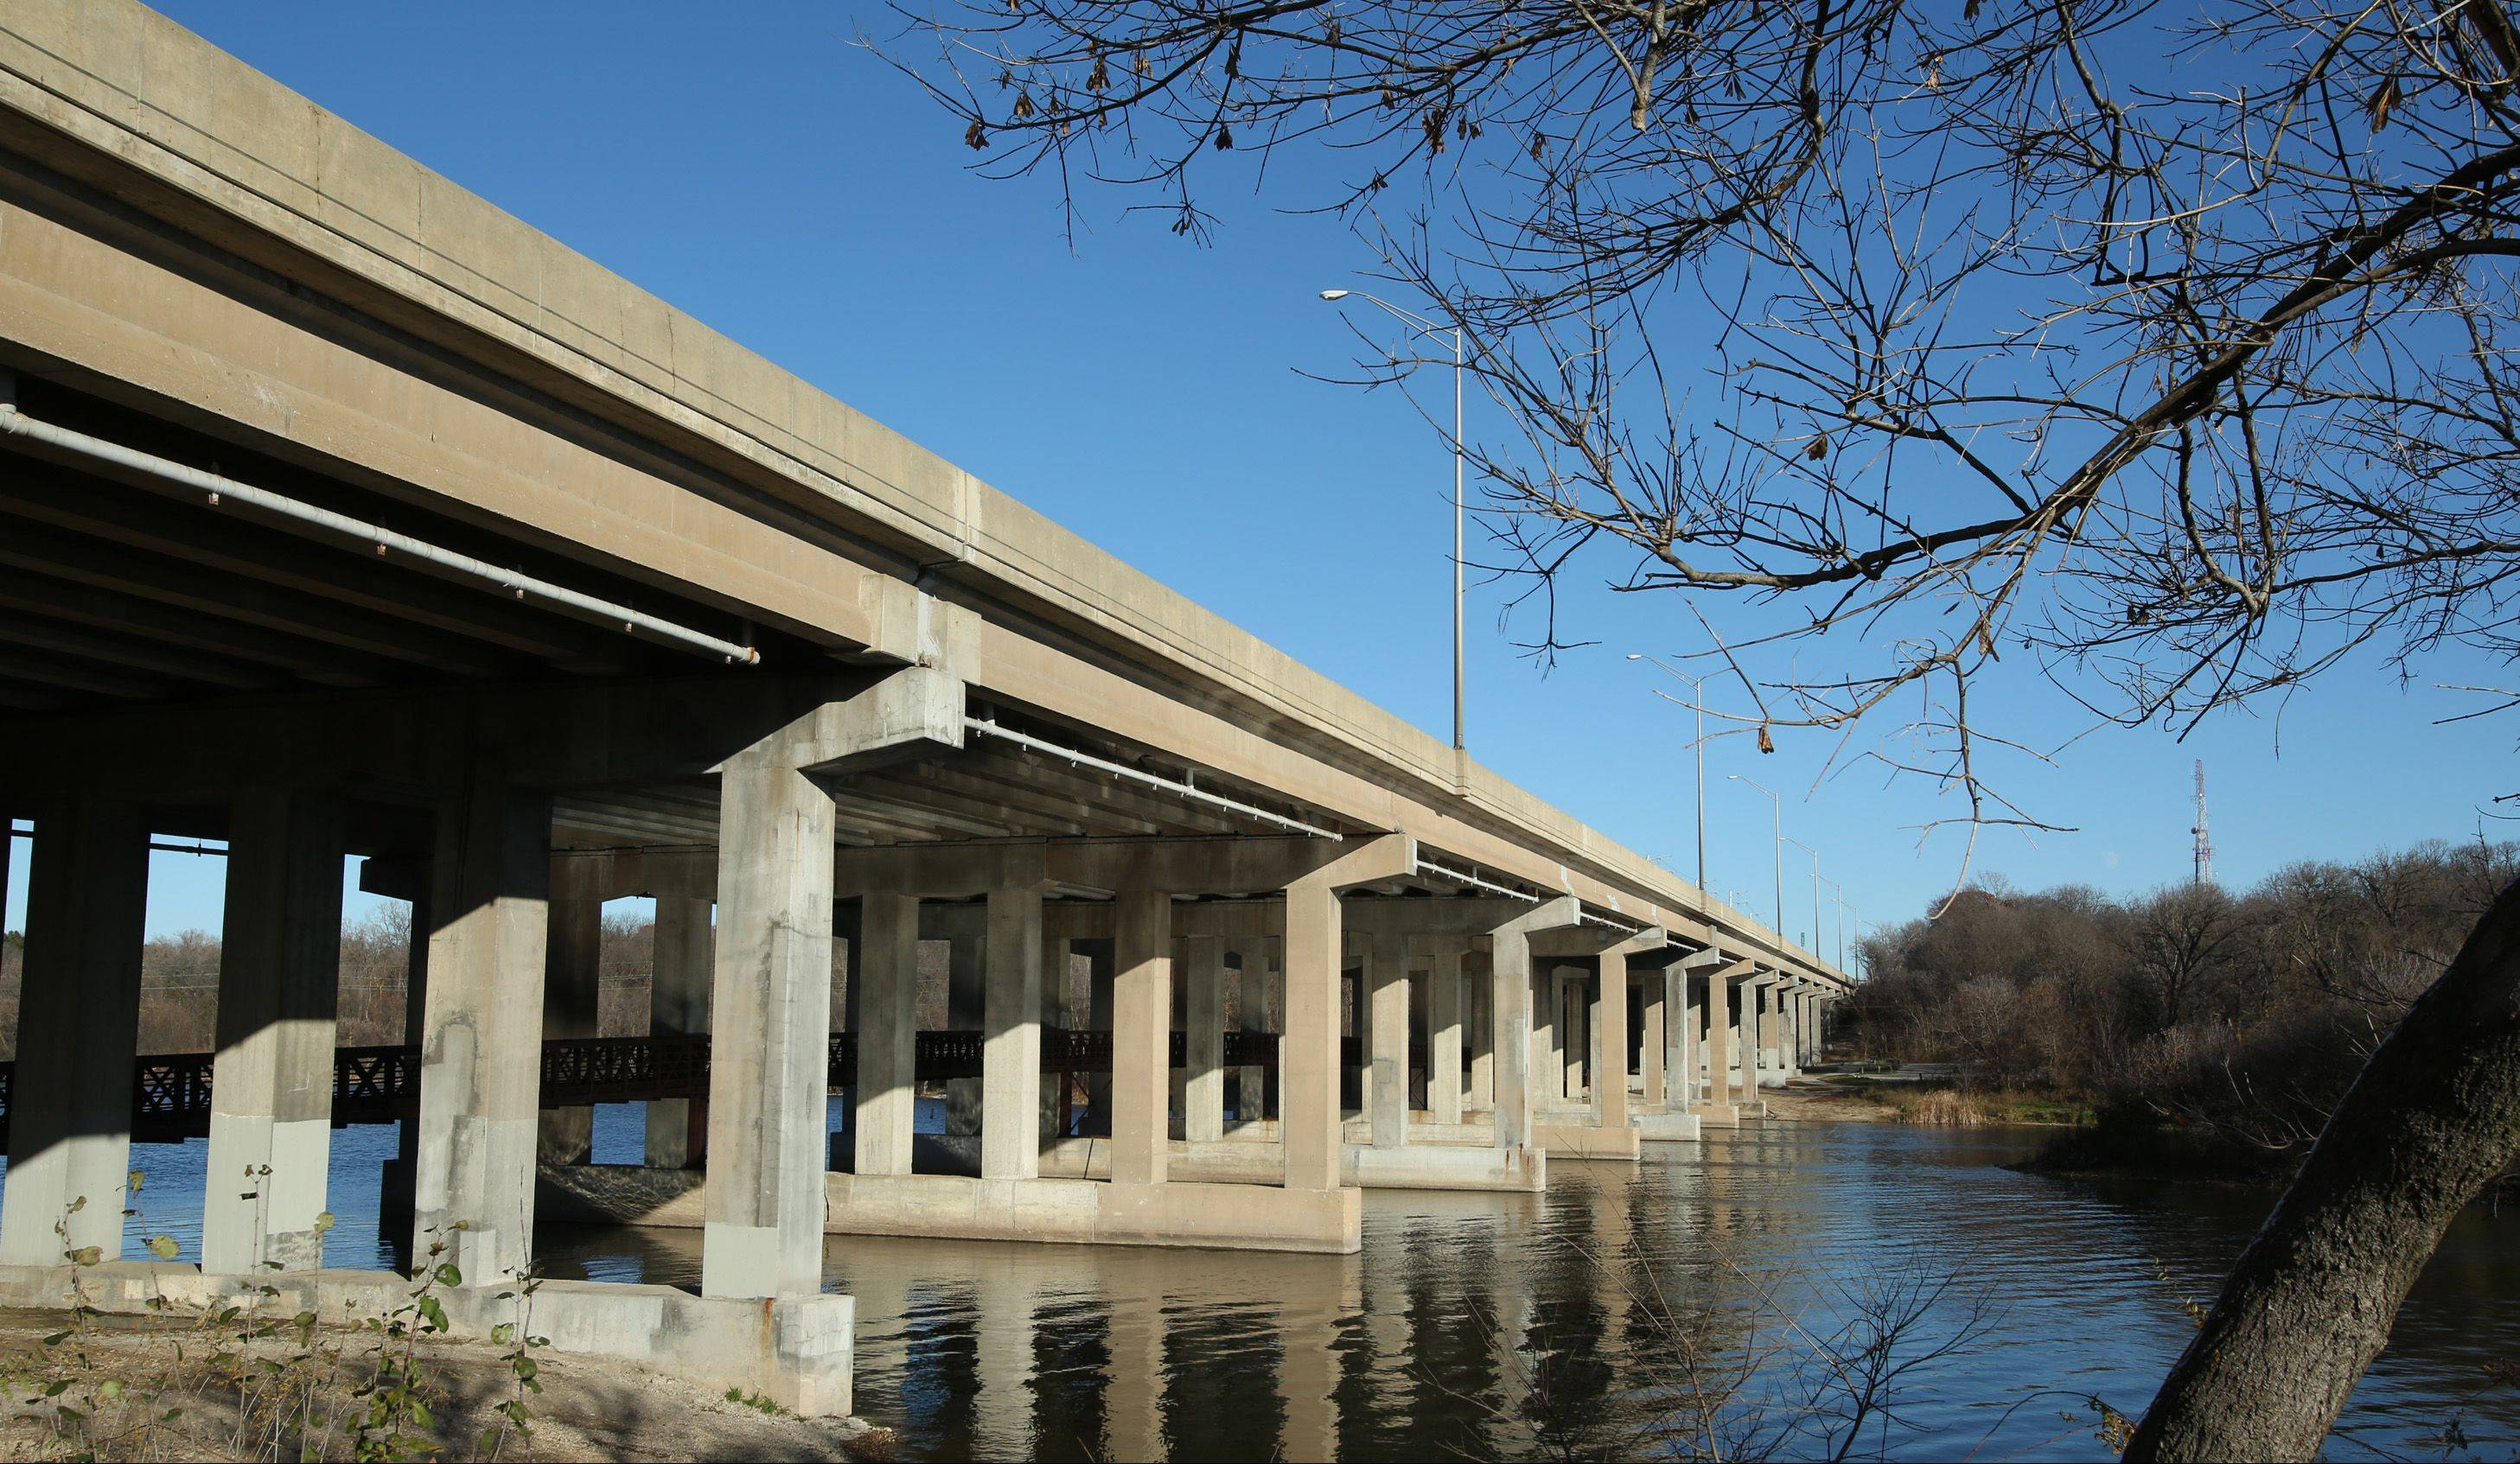 The pedestrian portion of the I-90 bridge over the Fox River will be closed during construction starting next spring.